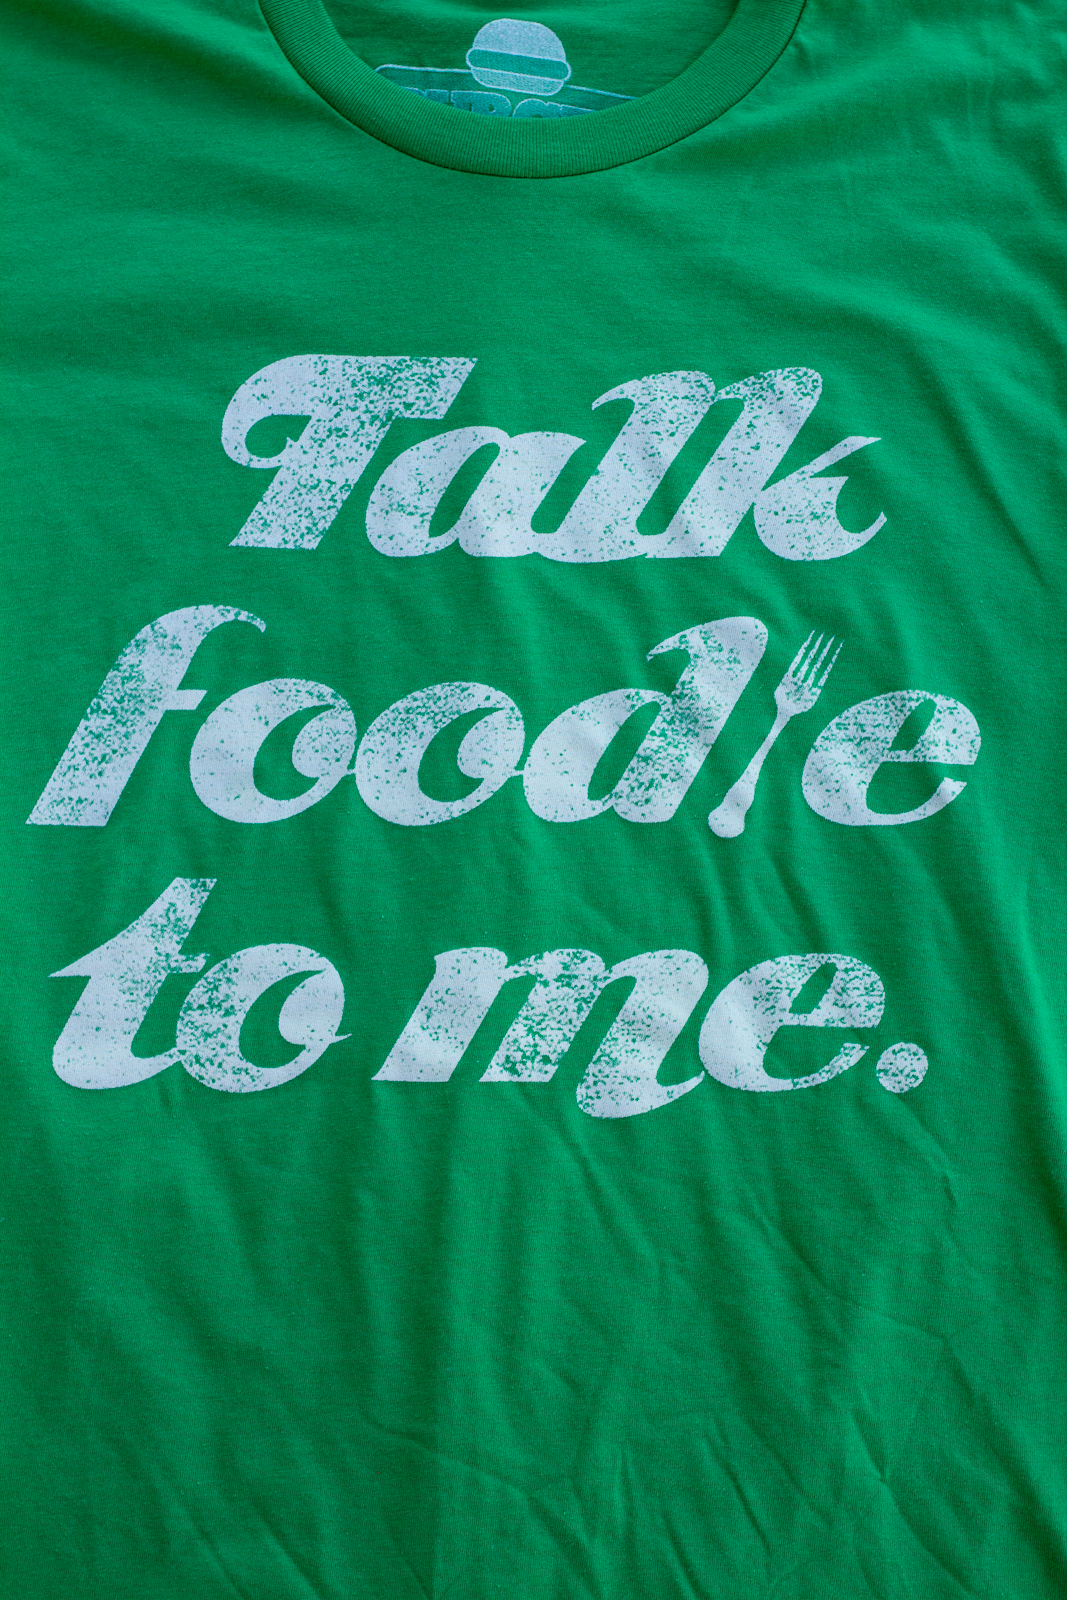 The Talk Foodie To Me Design front and center